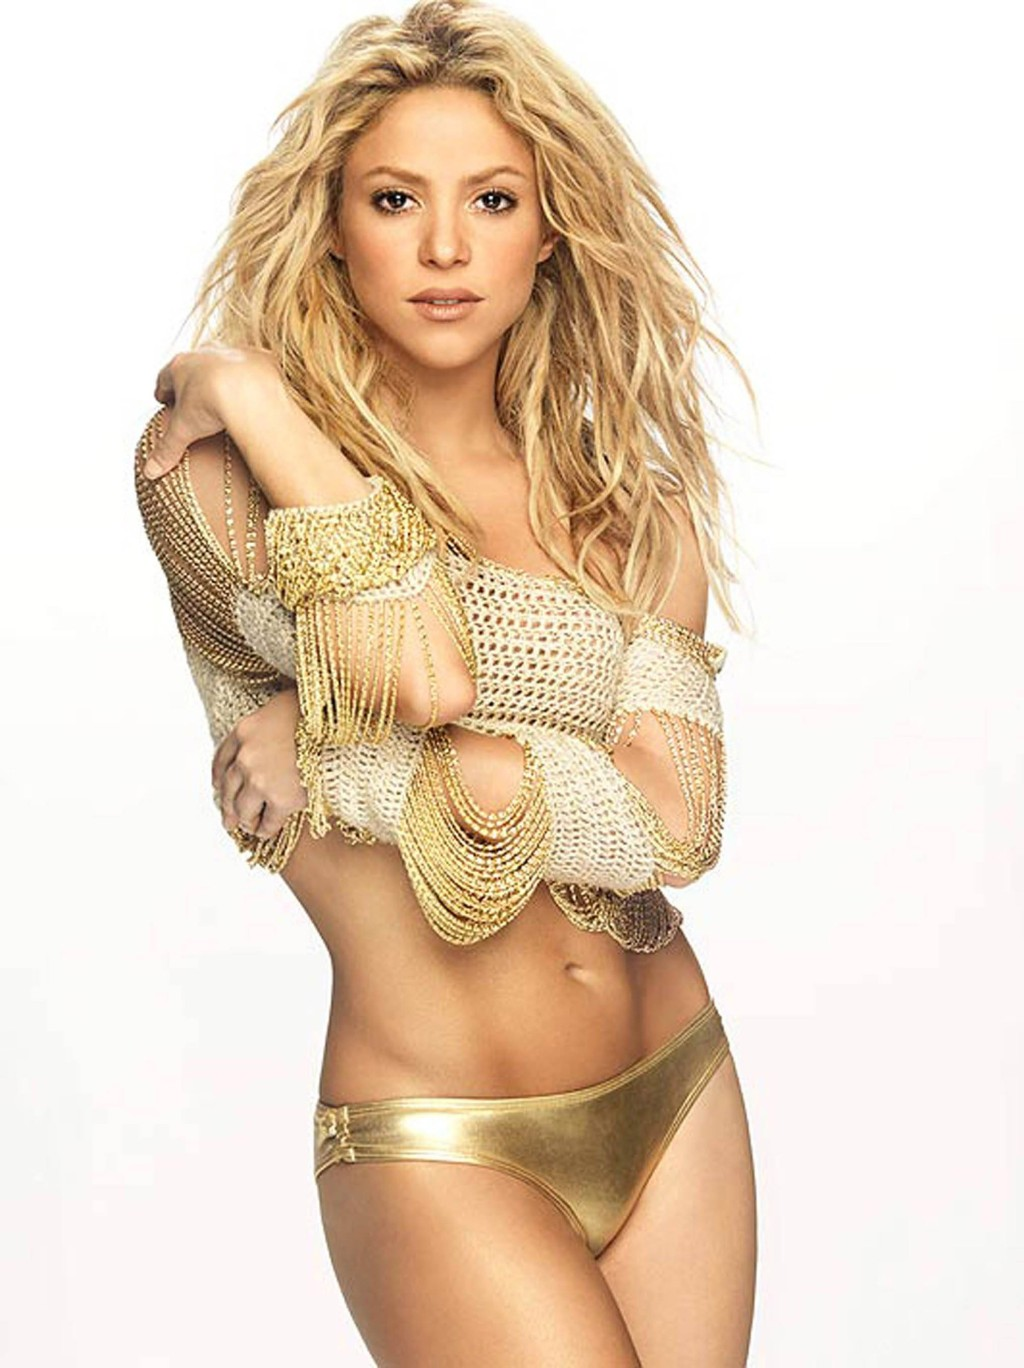 Image result for shakira hot